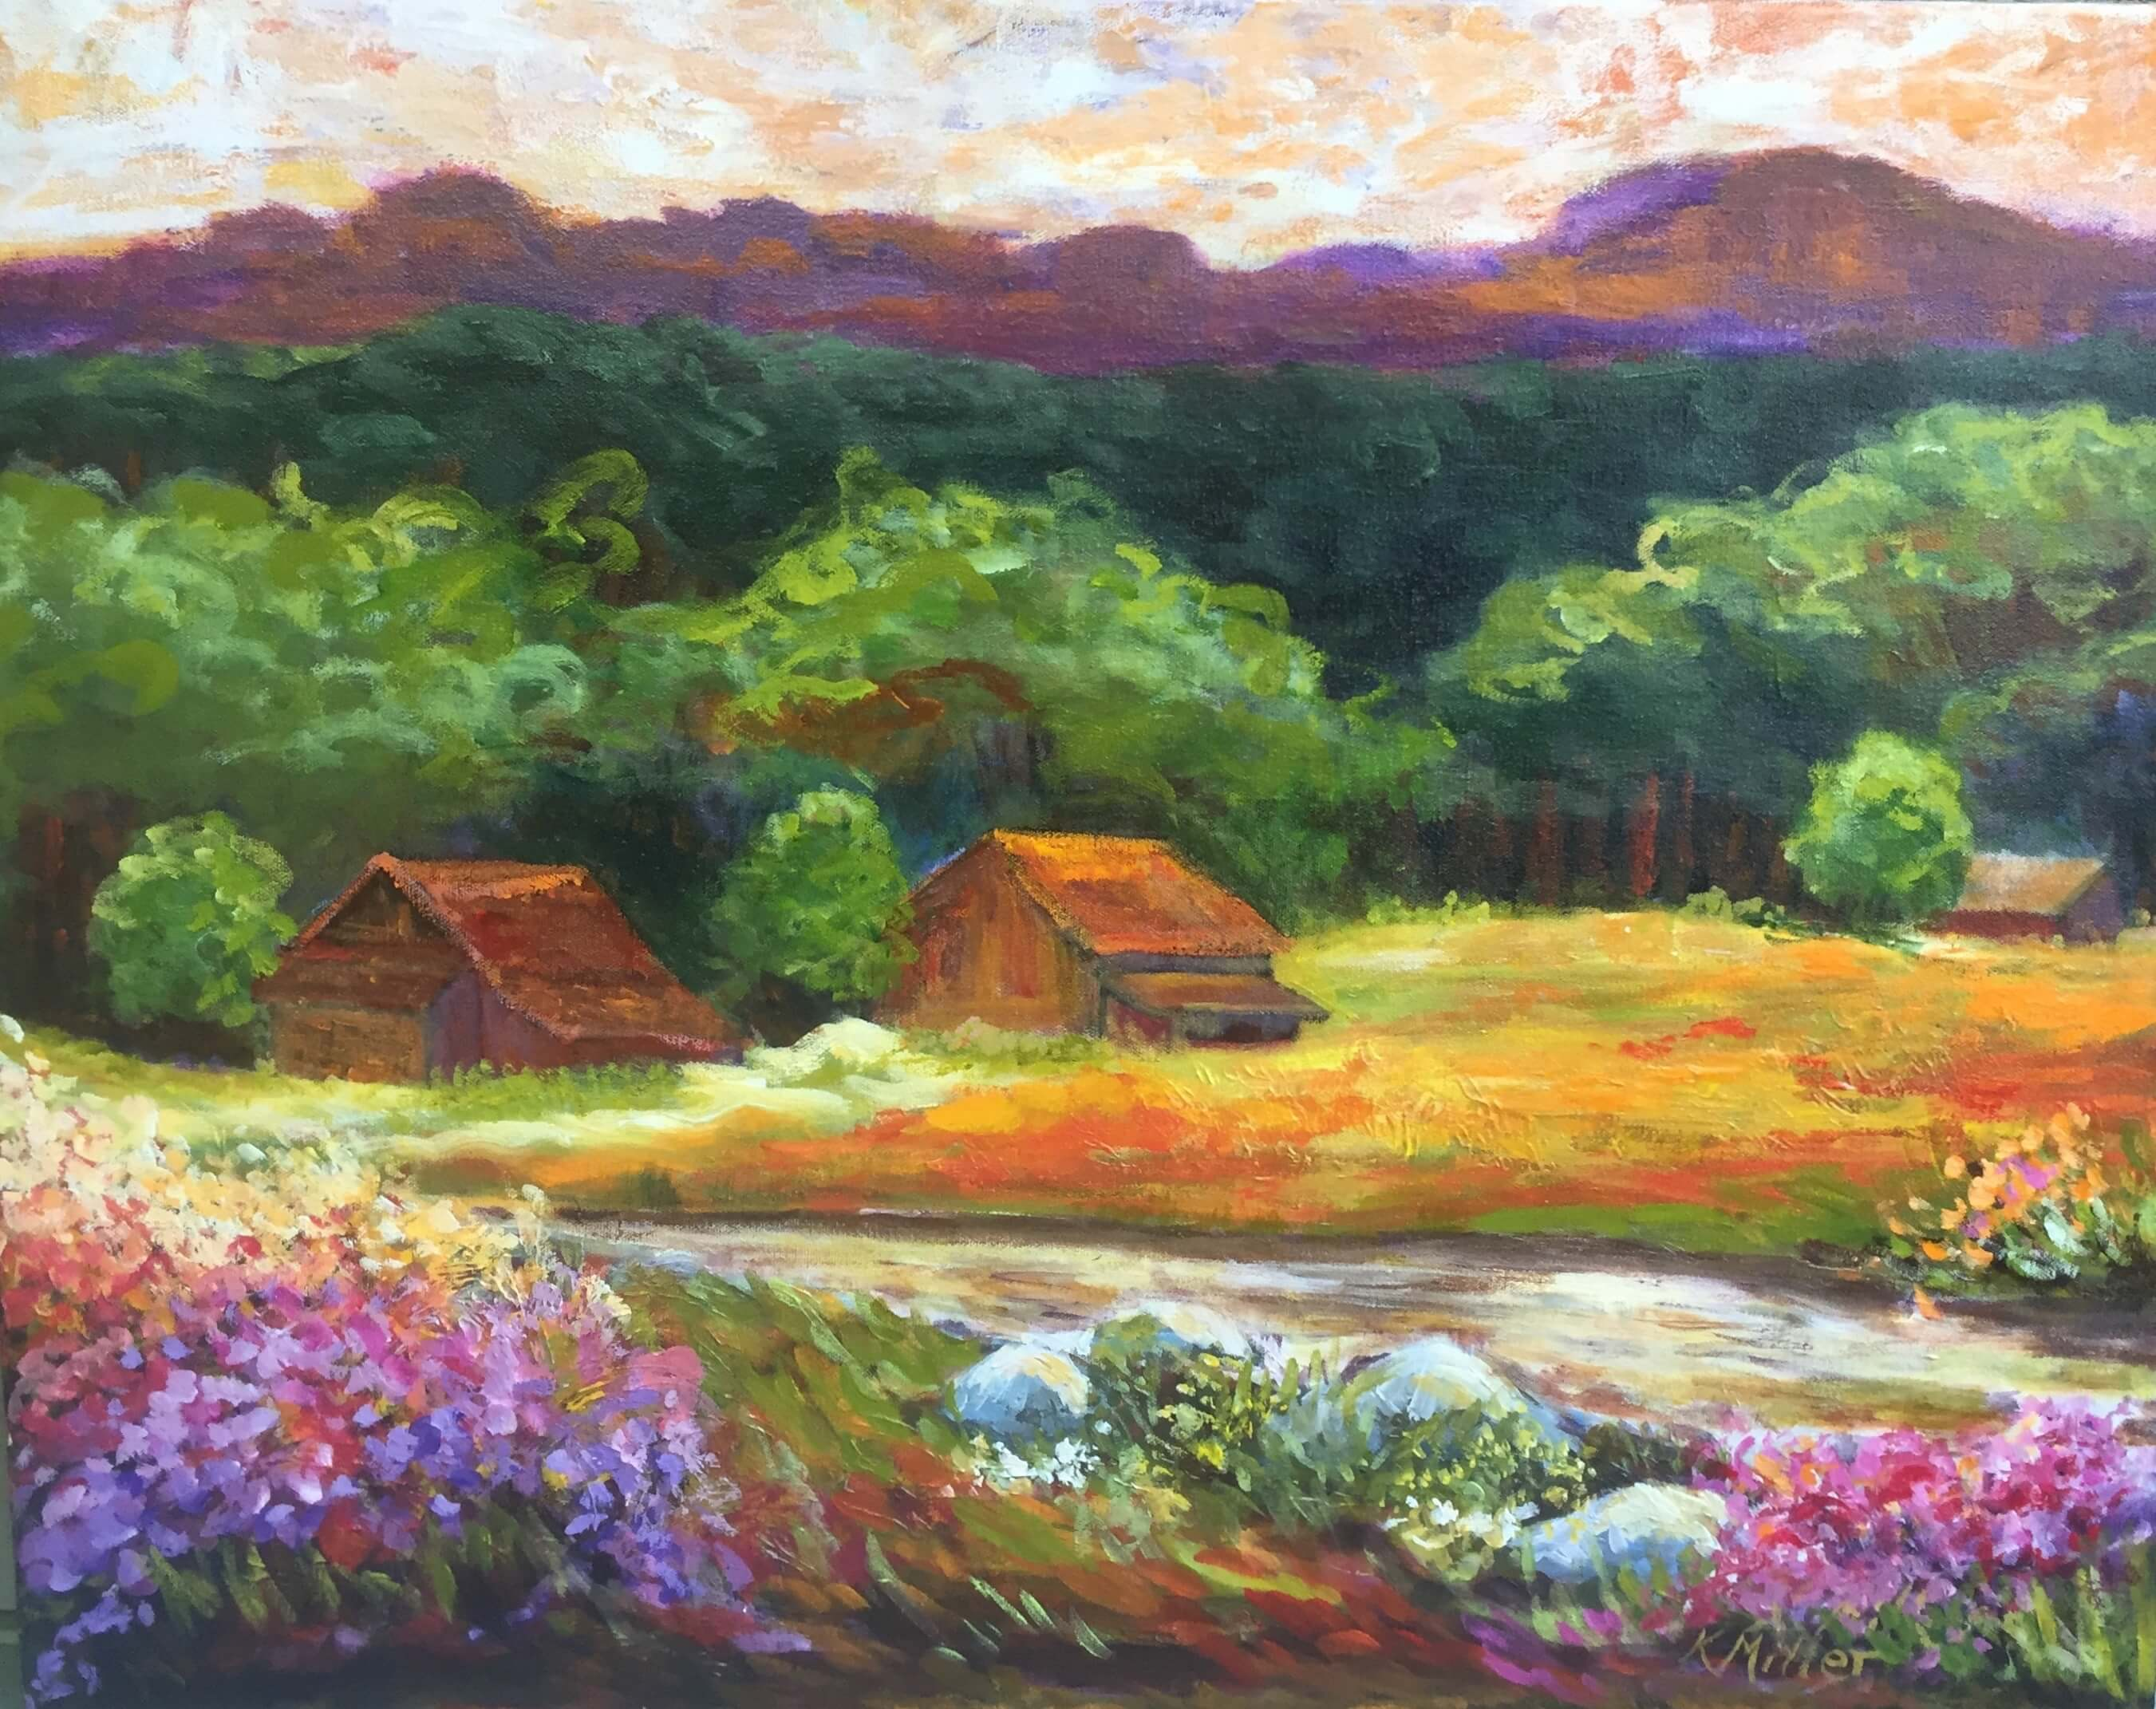 "A Mountain Brook and Meadow 22"" x 28"" Acrylic on Canvas Original Painting by Kathy Miller"